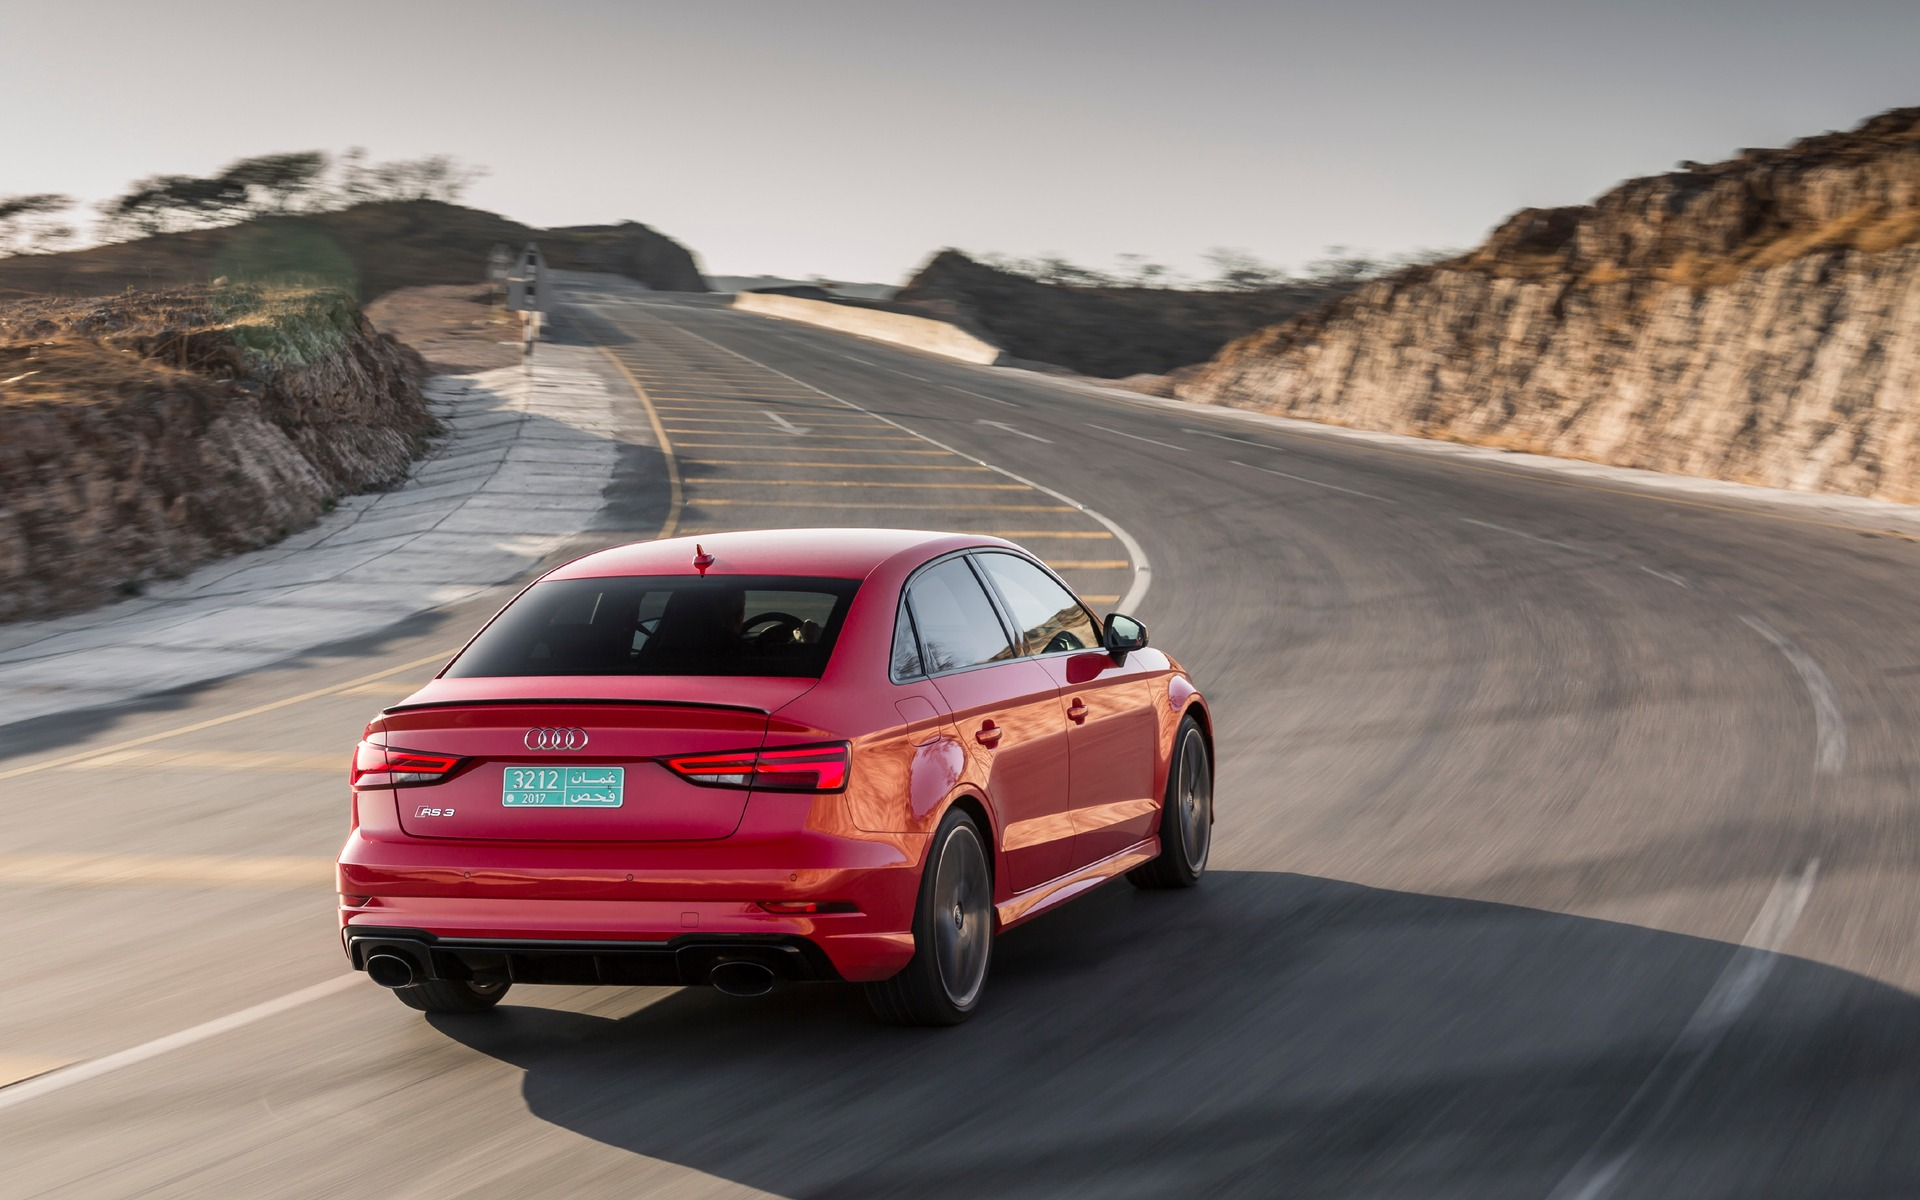 <p>2018 Audi RS 3 - The RS 3 has a lot of grip in fast corners.</p>